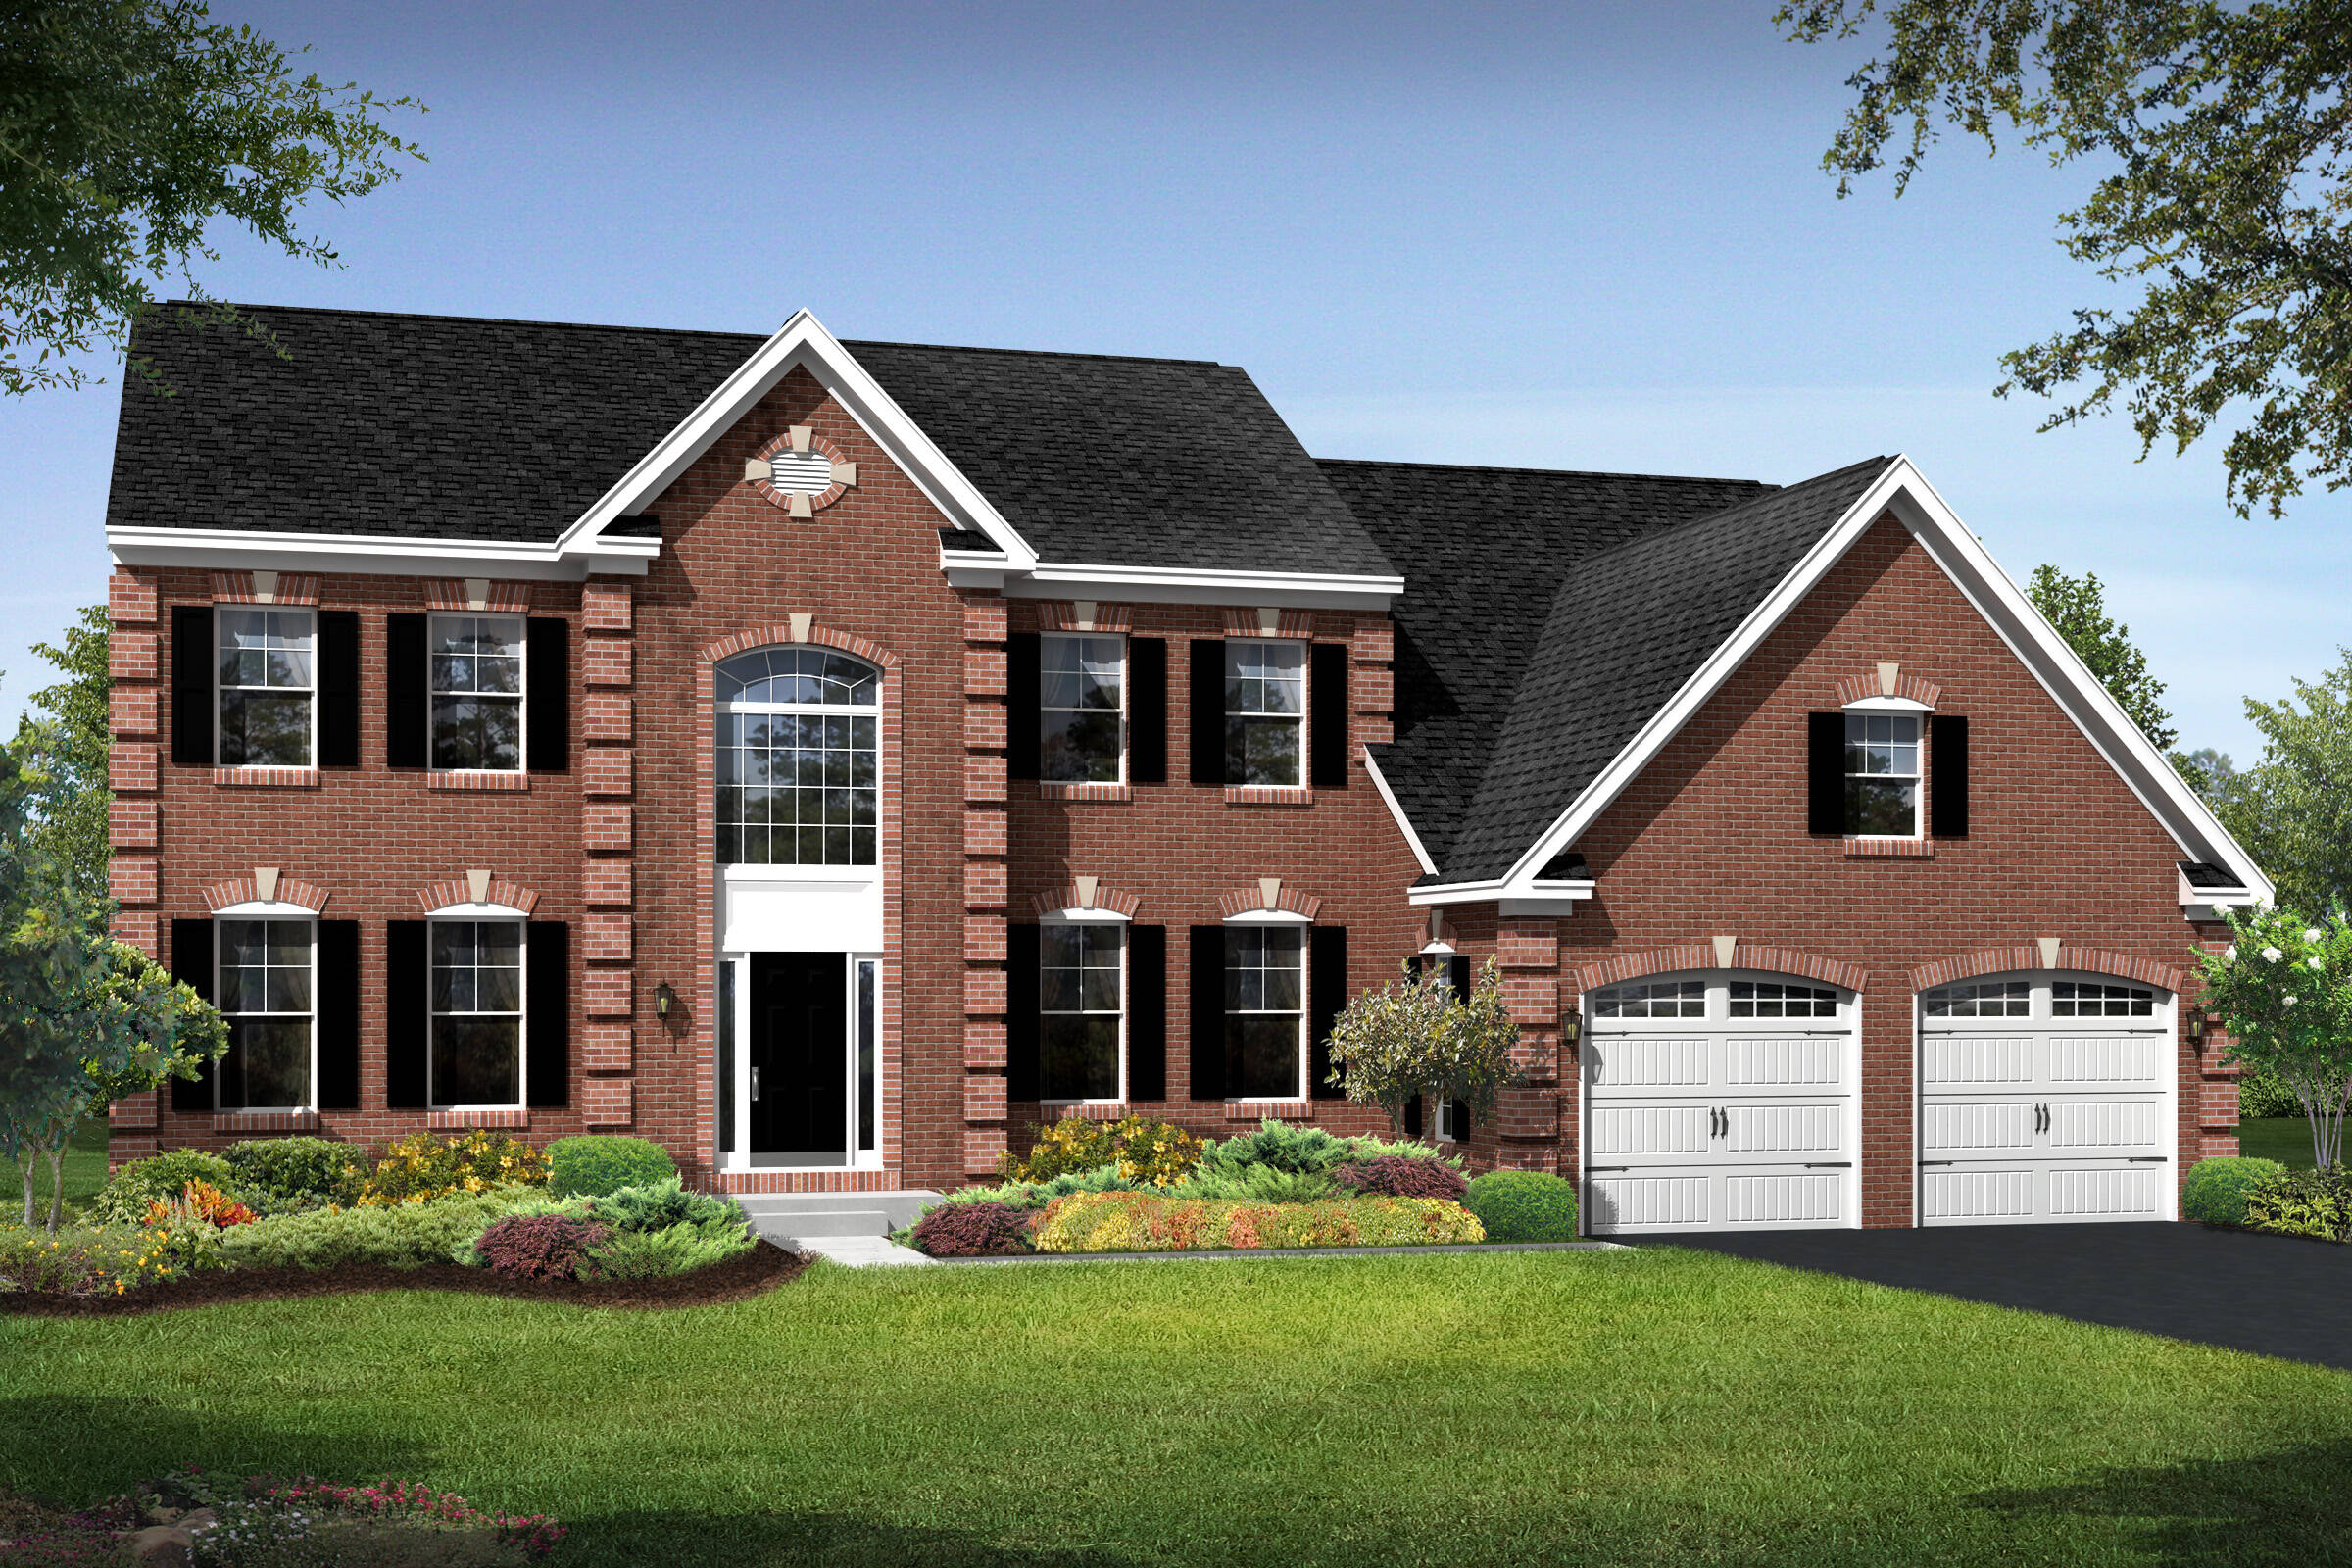 rhode island traditional new homes at magness farm in virginia